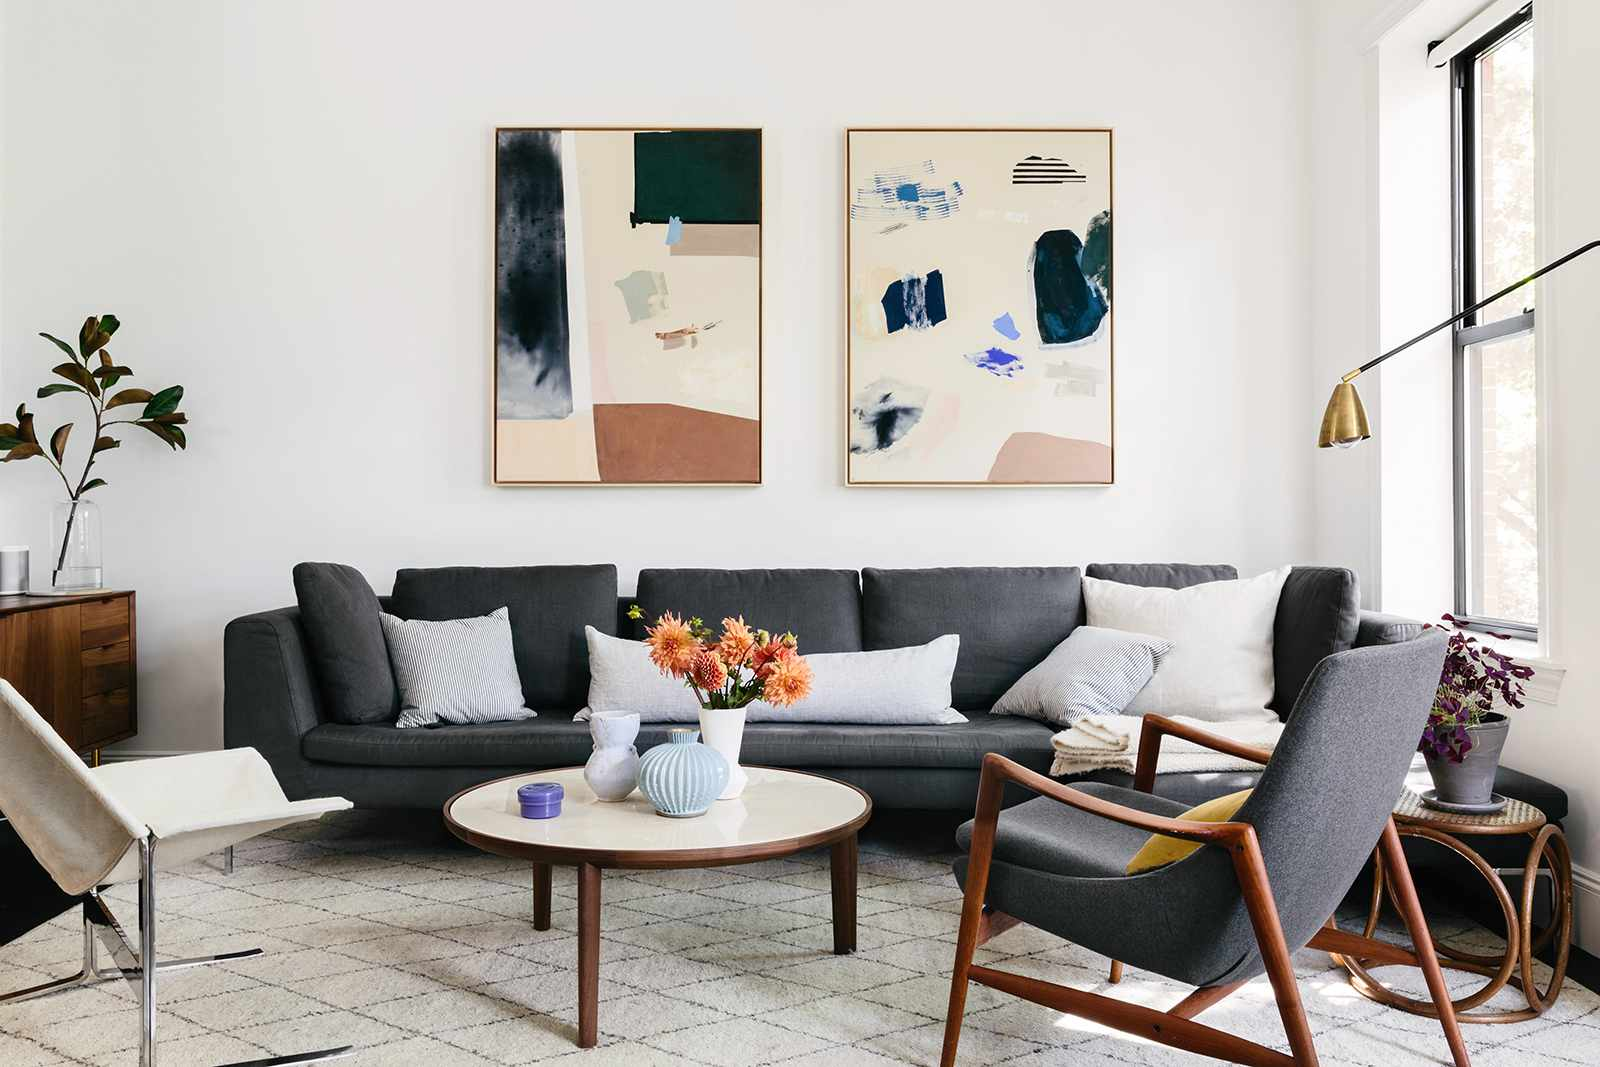 A living room with sleek midcentury modern furniture and contemporary abstract art